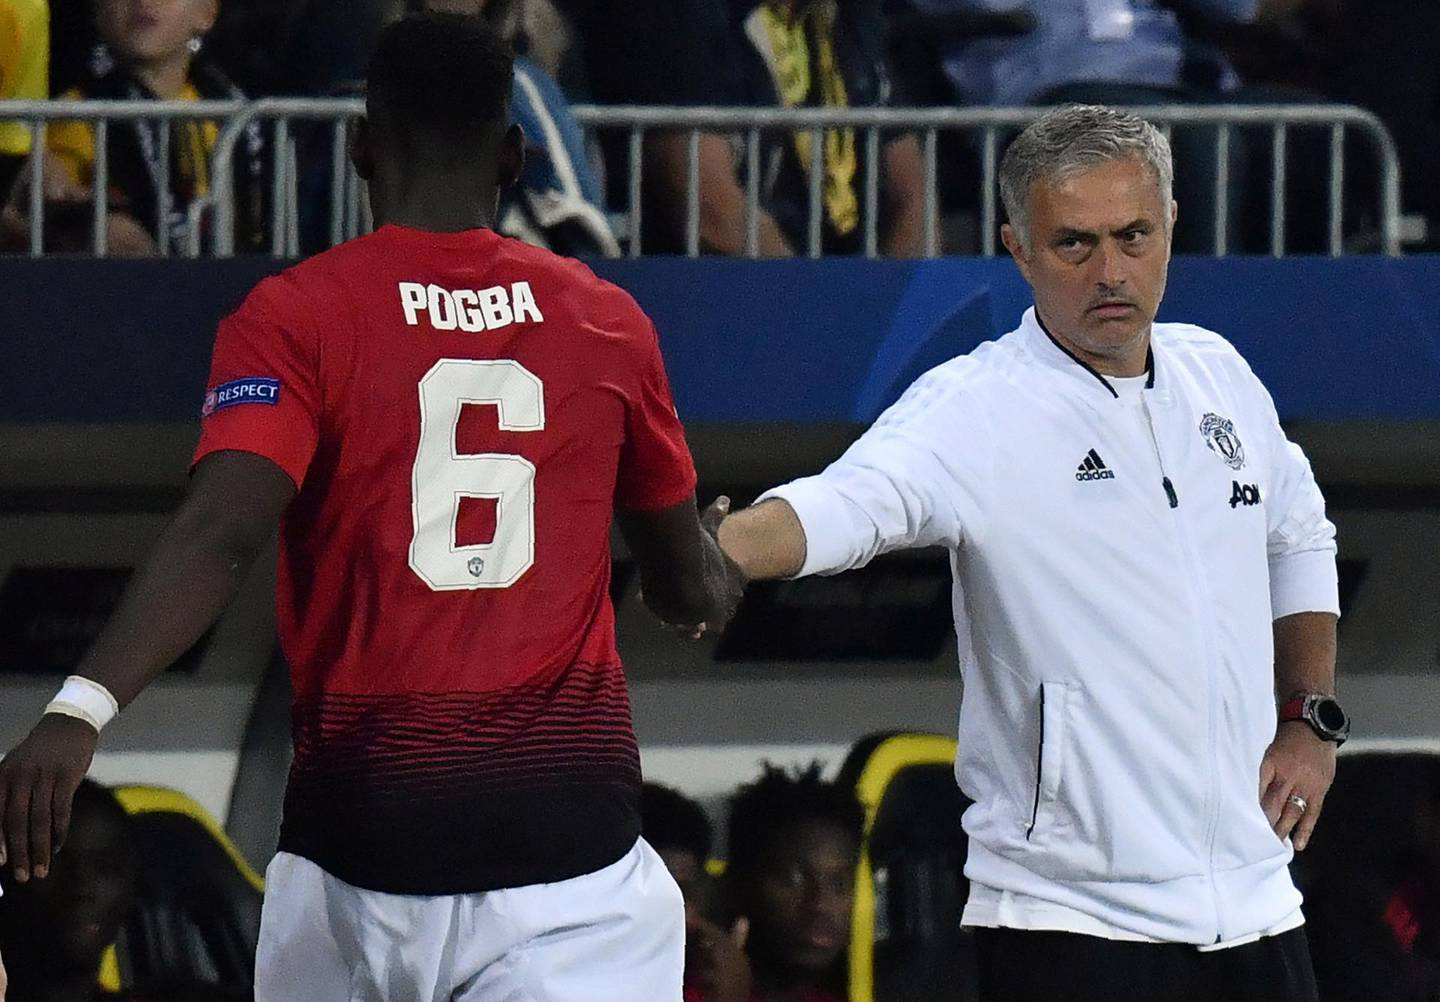 Manchester United's French midfielder Paul Pogba (L) shakes hands with Manchester United's Portuguese manager Jose Mourinho after his substitution during the UEFA Champions League group H football match between Young Boys and Manchester United at The Stade de Suisse in Bern on September 19, 2018. (Photo by Alain GROSCLAUDE / AFP)